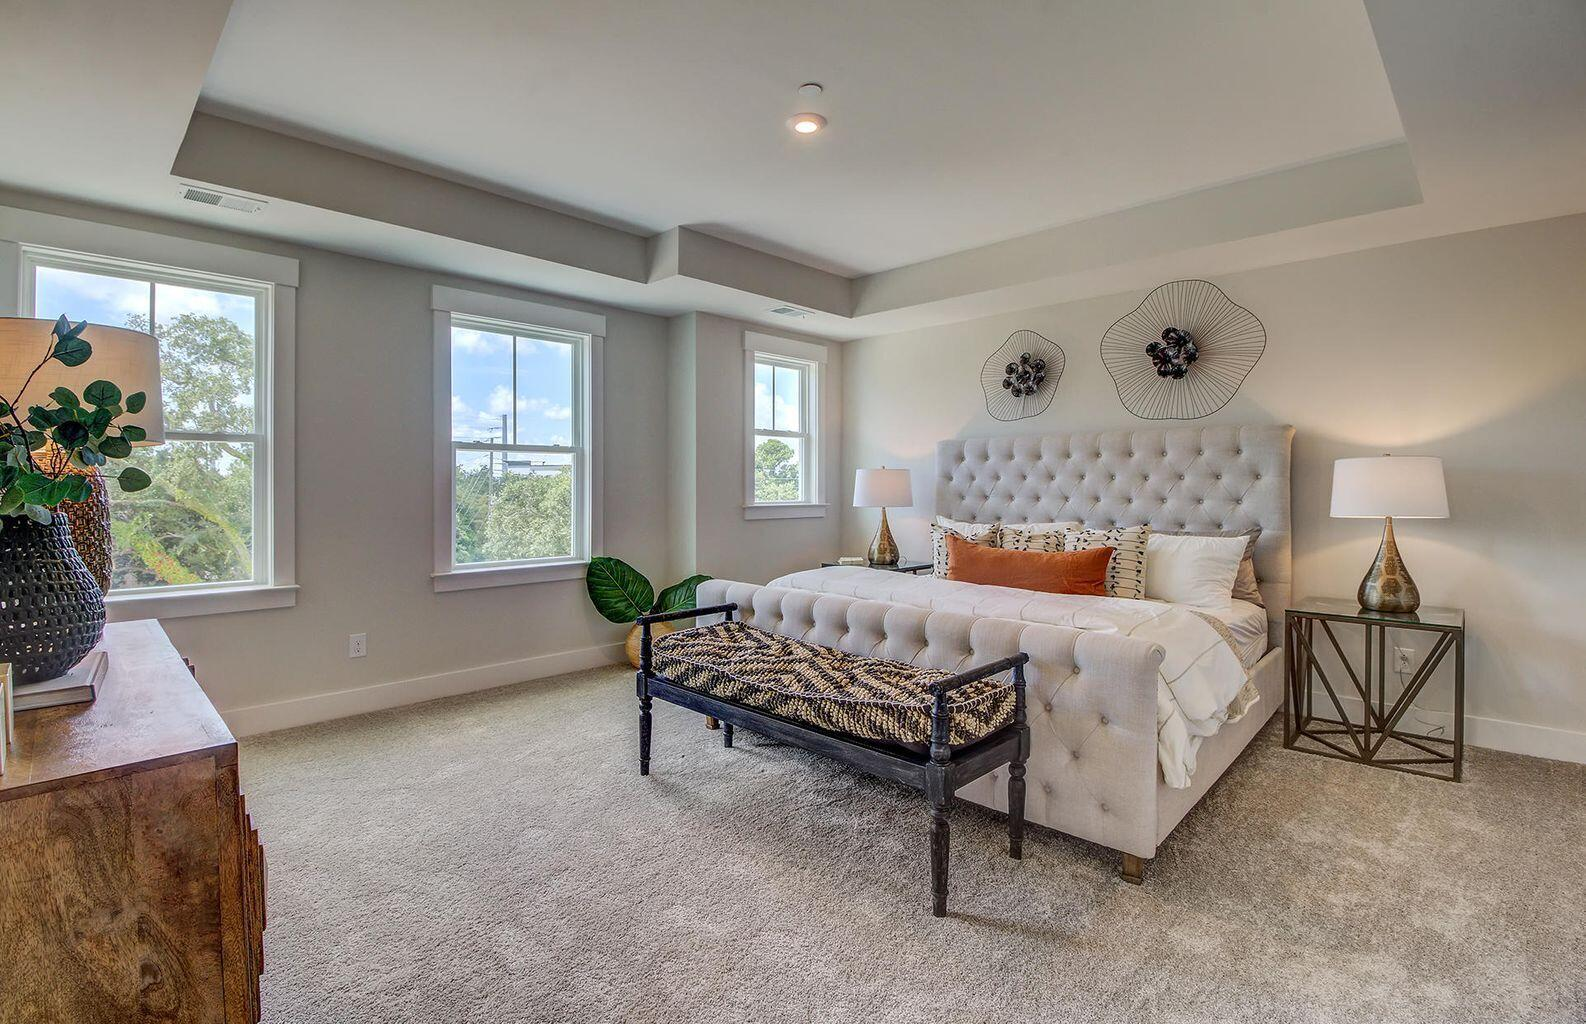 The Cove at Folly Homes For Sale - 2139 Tides End, Charleston, SC - 30